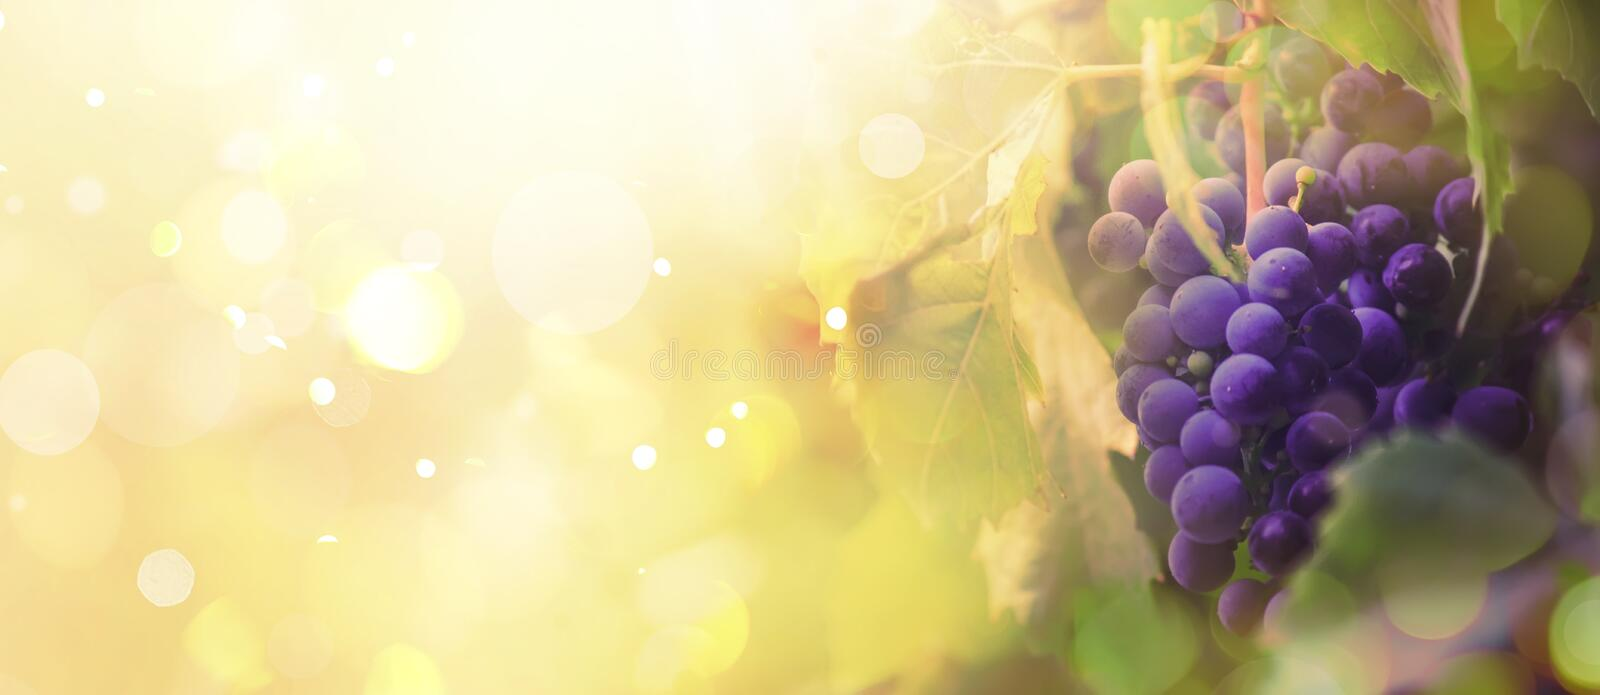 Blue grapes on the vine, wine variety in the vineyard, autumn natural background, banner, copy space, selective focus. Blue grapes on the vine, wine variety in royalty free stock images